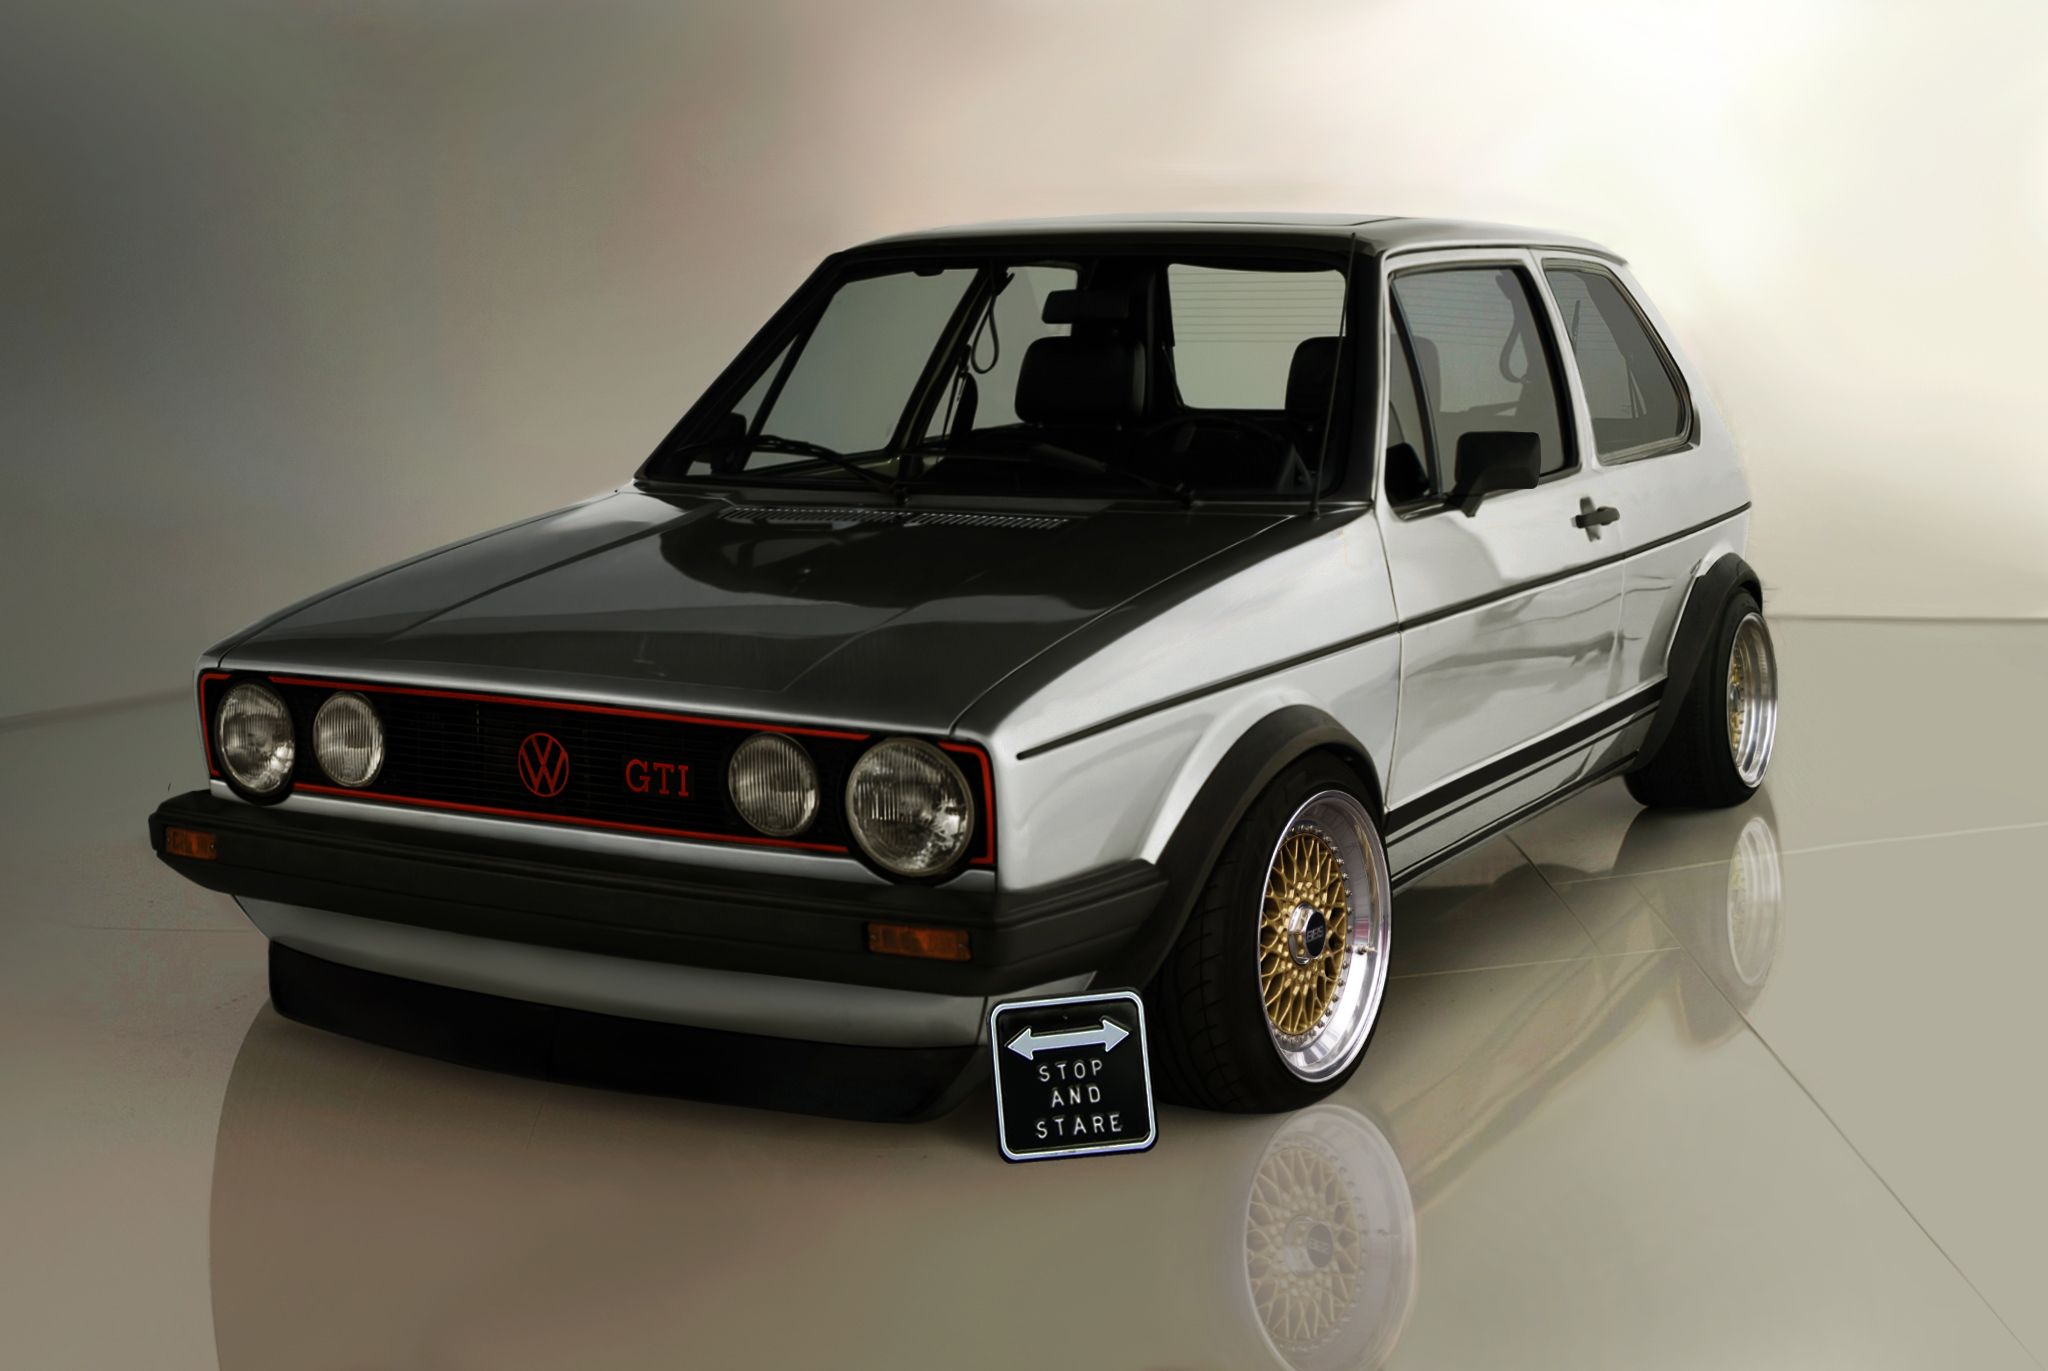 volkswagen golf mki gti stop and stare vw caddy golf 1 mk1 pinterest volkswagen golf. Black Bedroom Furniture Sets. Home Design Ideas